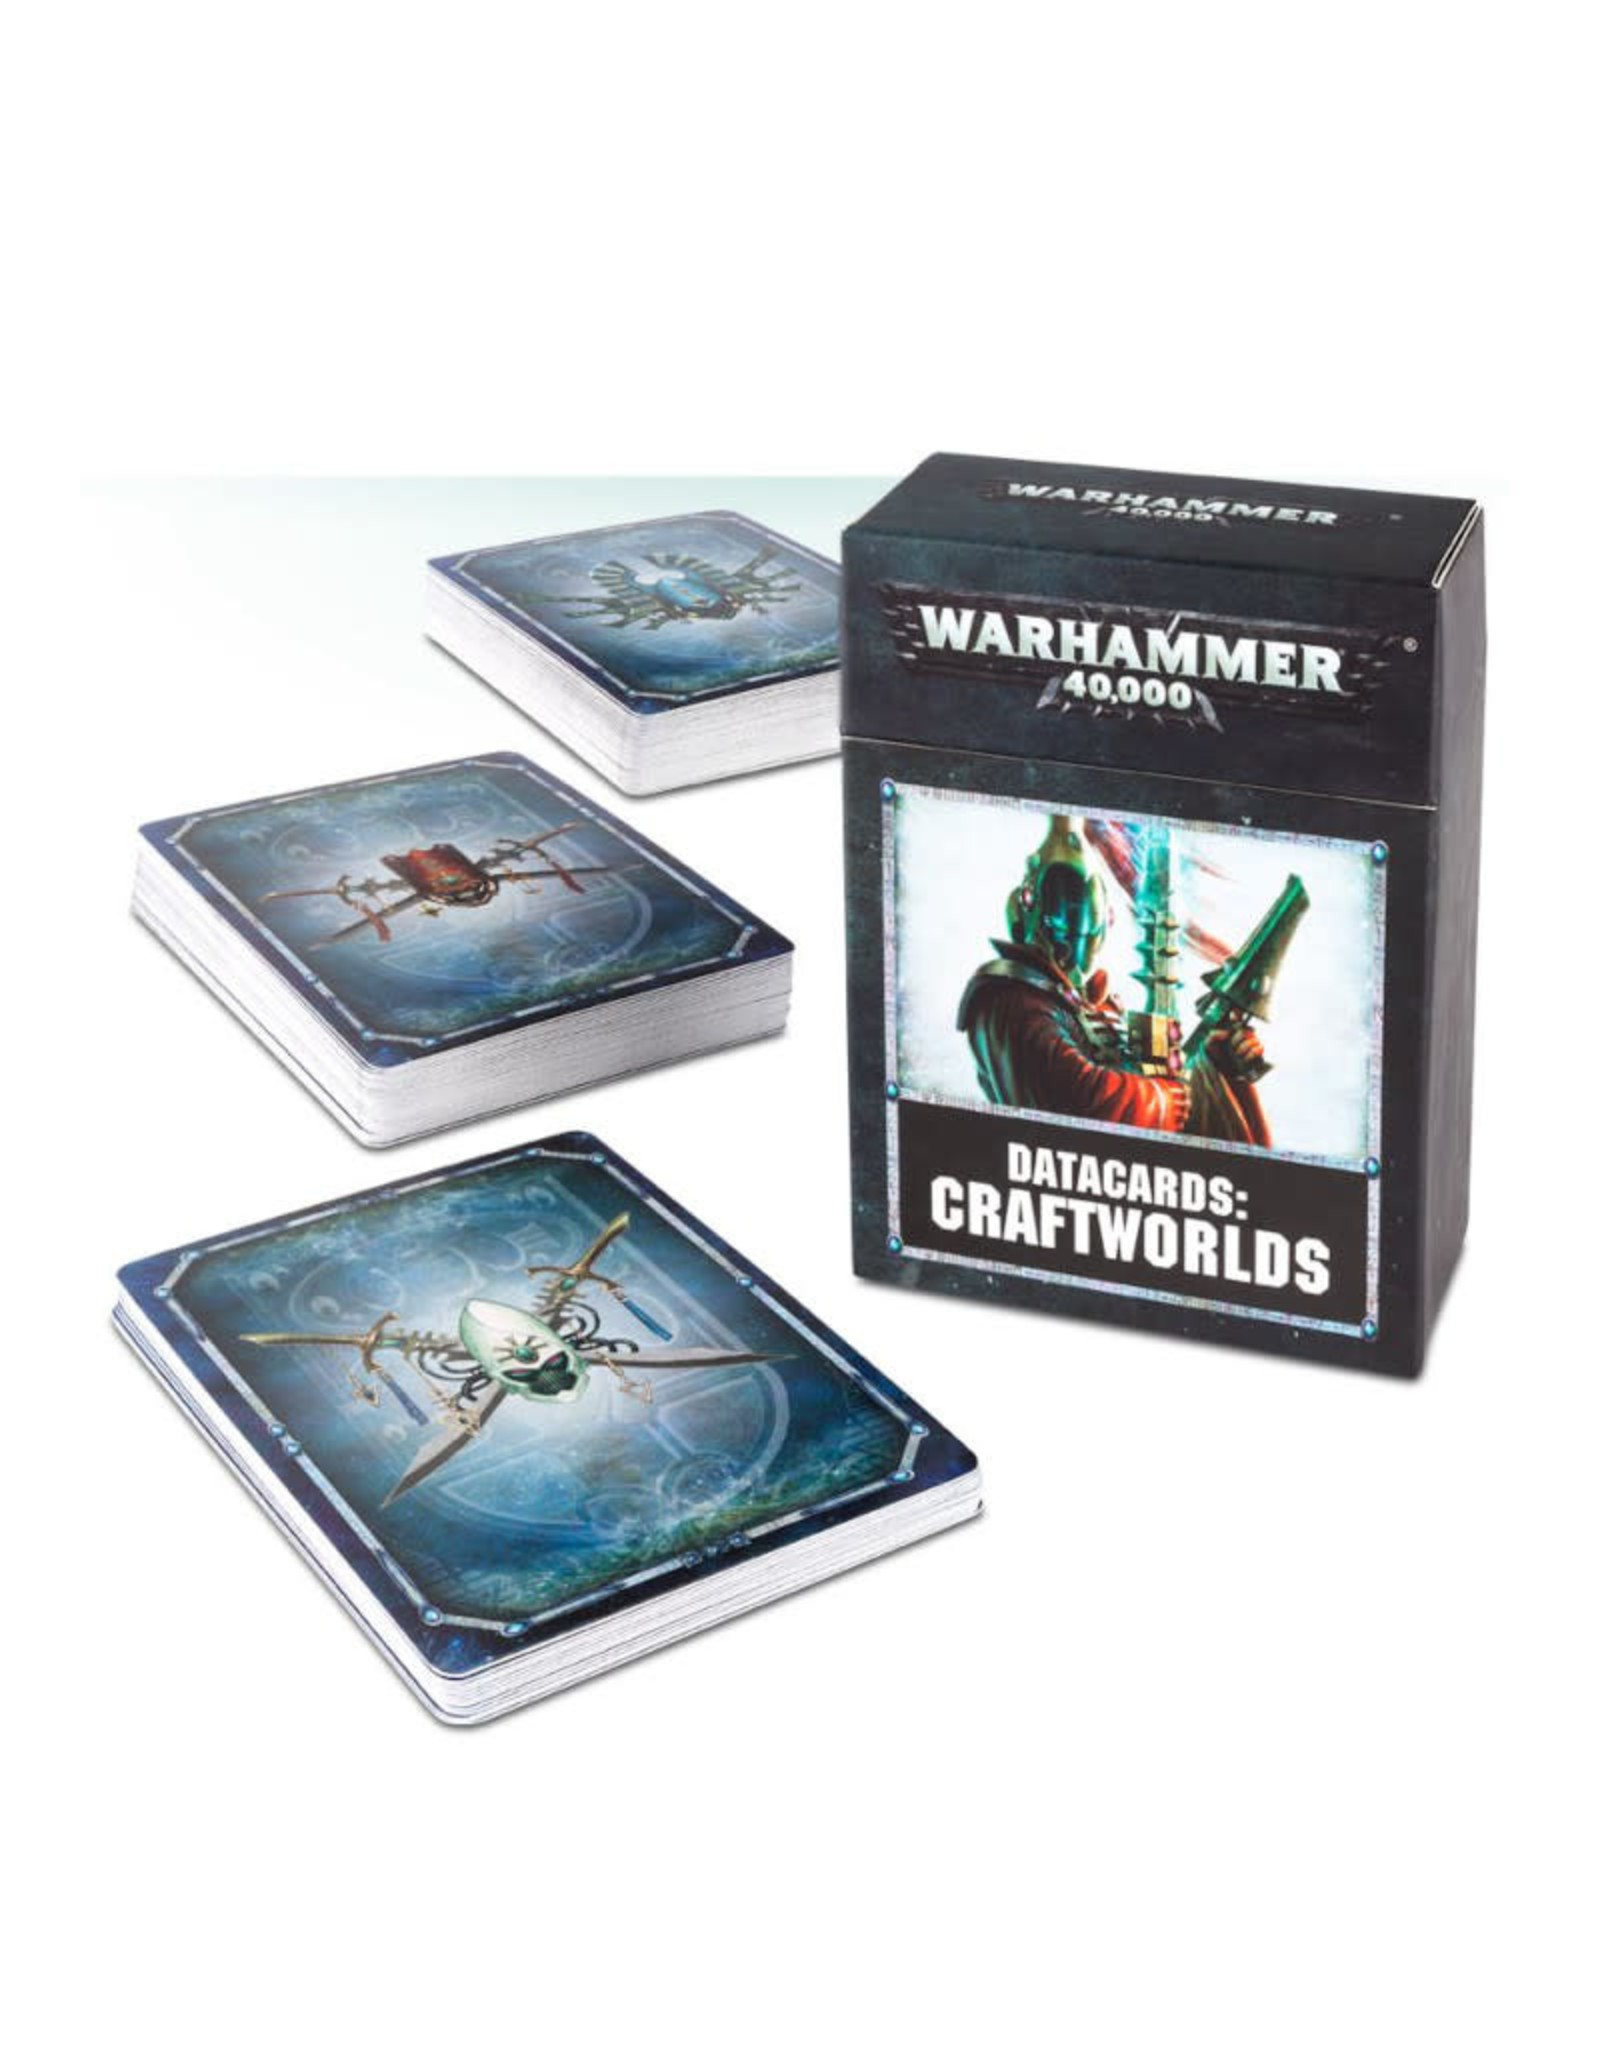 Games Workshop Warhammer 40K Datacards Craftworlds (8th Edition)